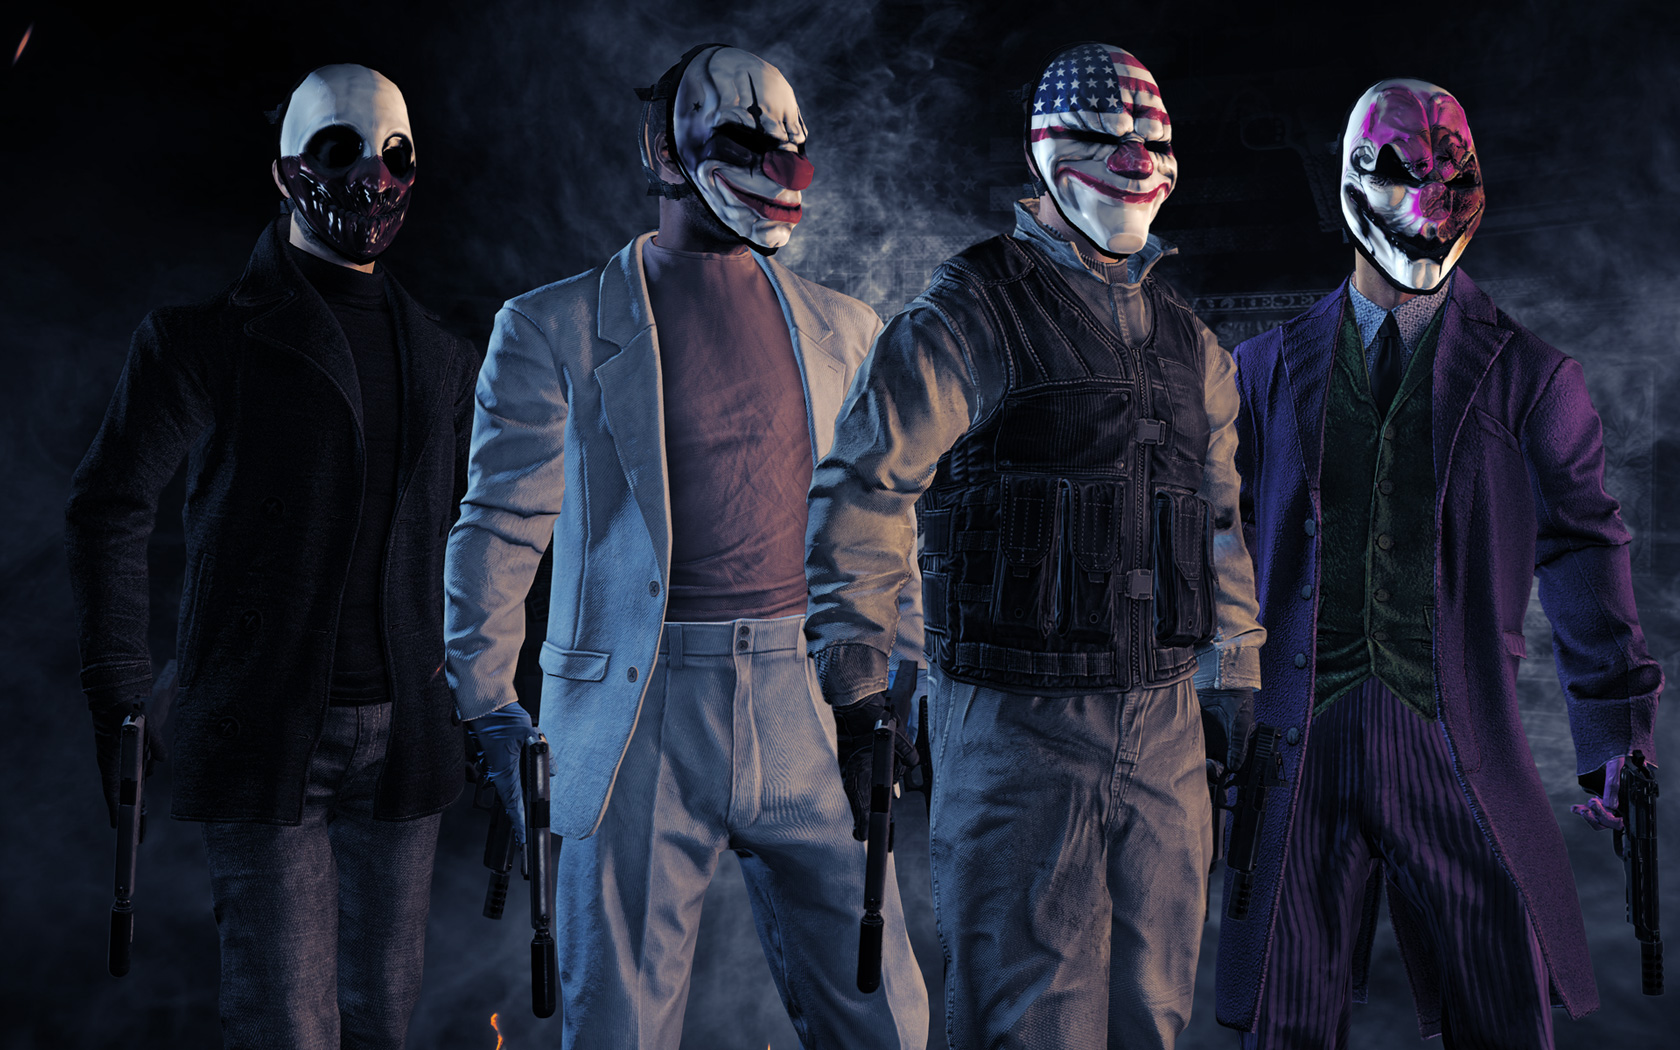 Payday 2 Wallpaper in 1680x1050